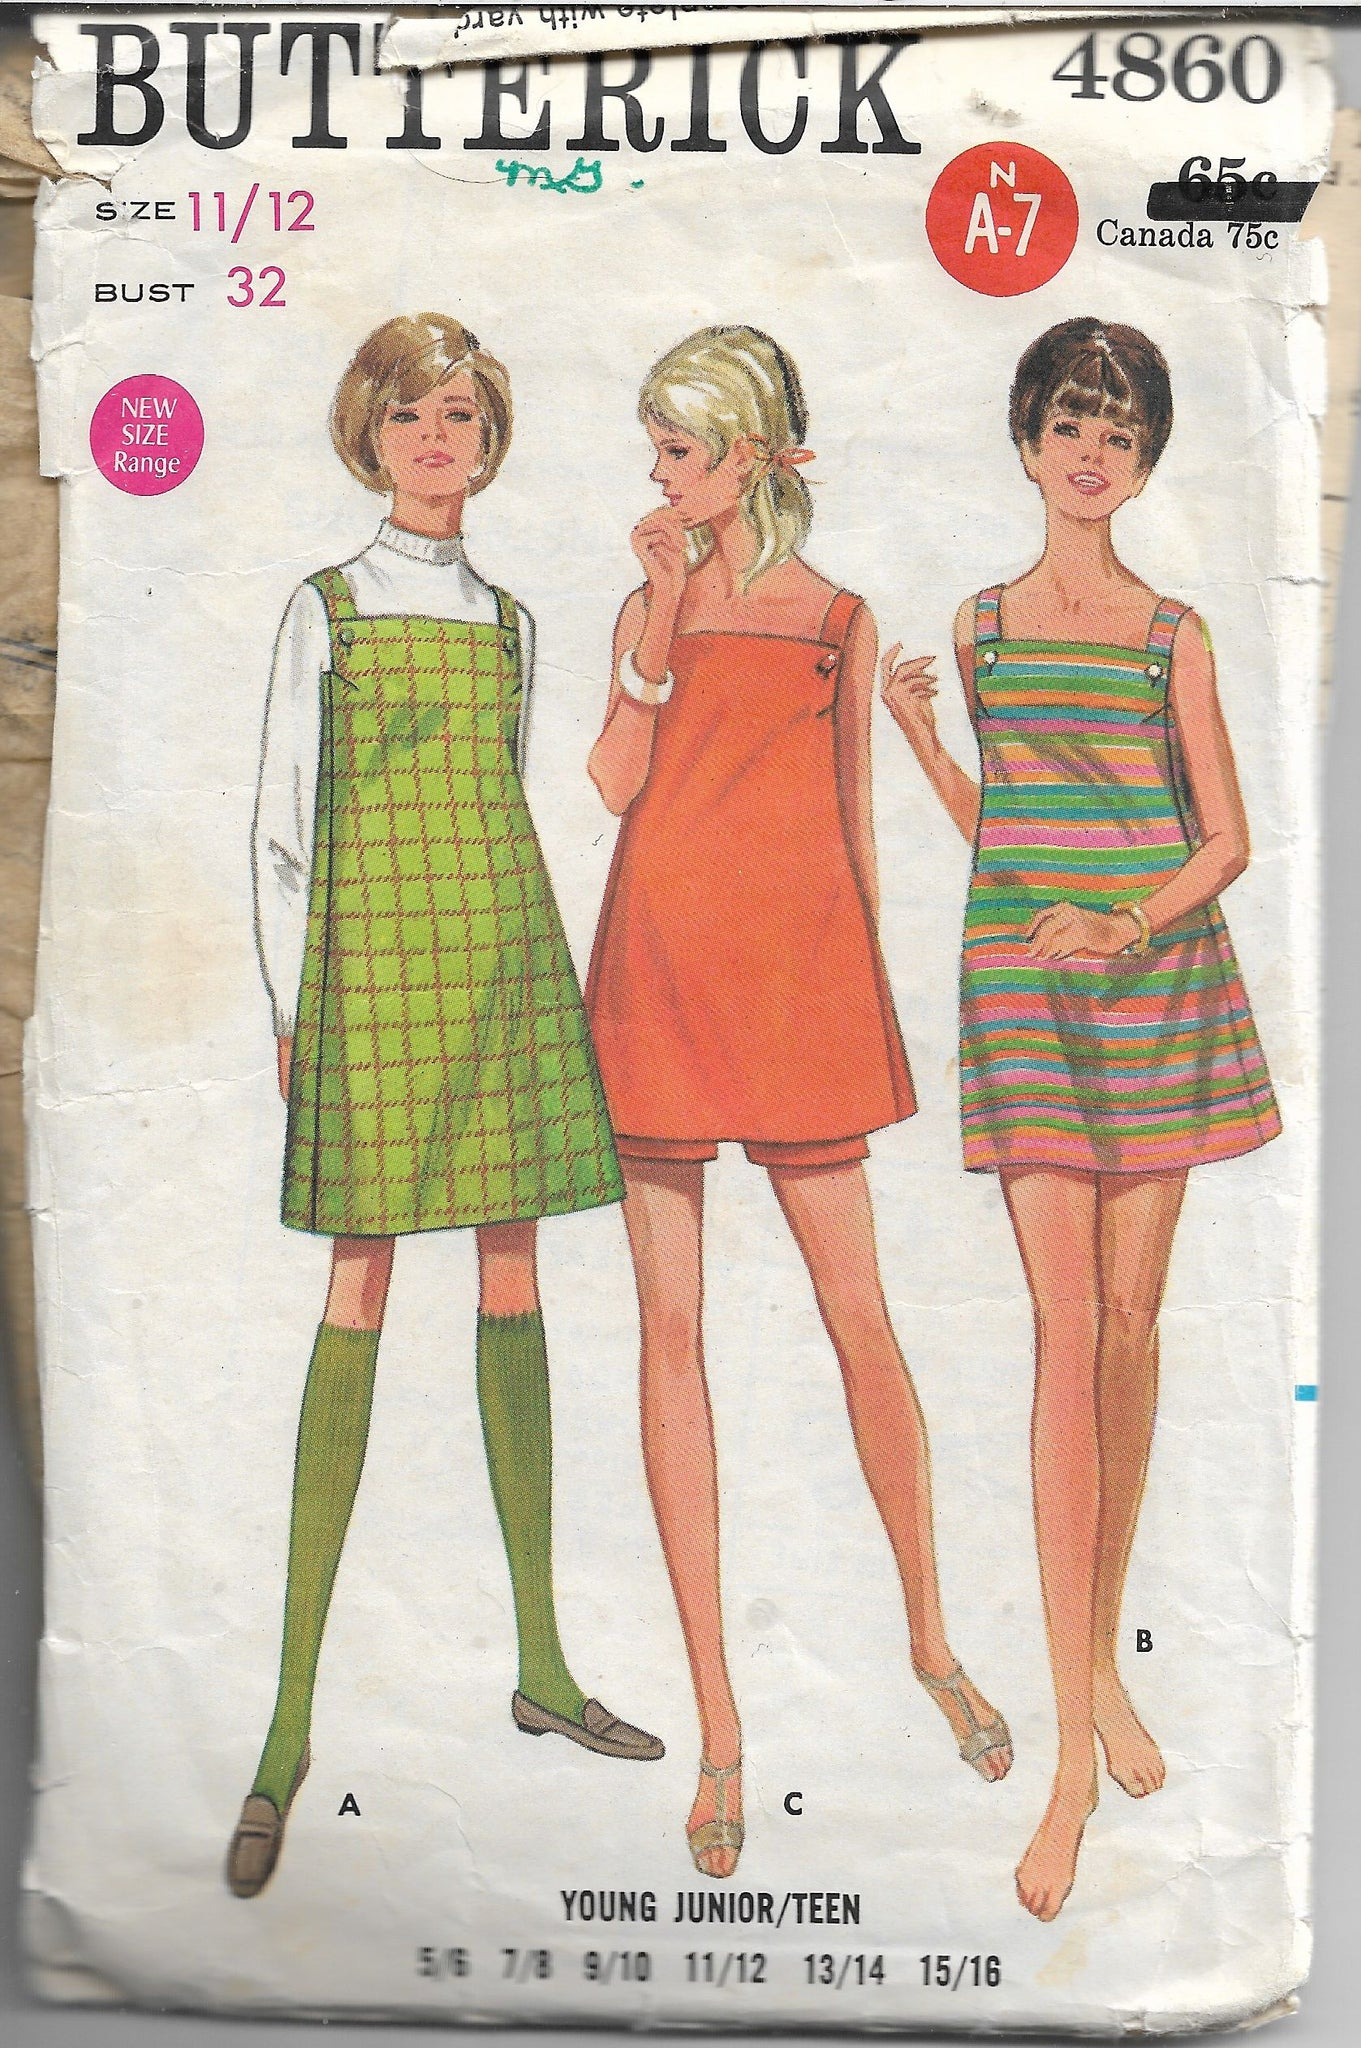 Butterick 4860 Vintage Sewing Pattern 1960s Ladies Jumper Dress Shorts - VintageStitching - Vintage Sewing Patterns